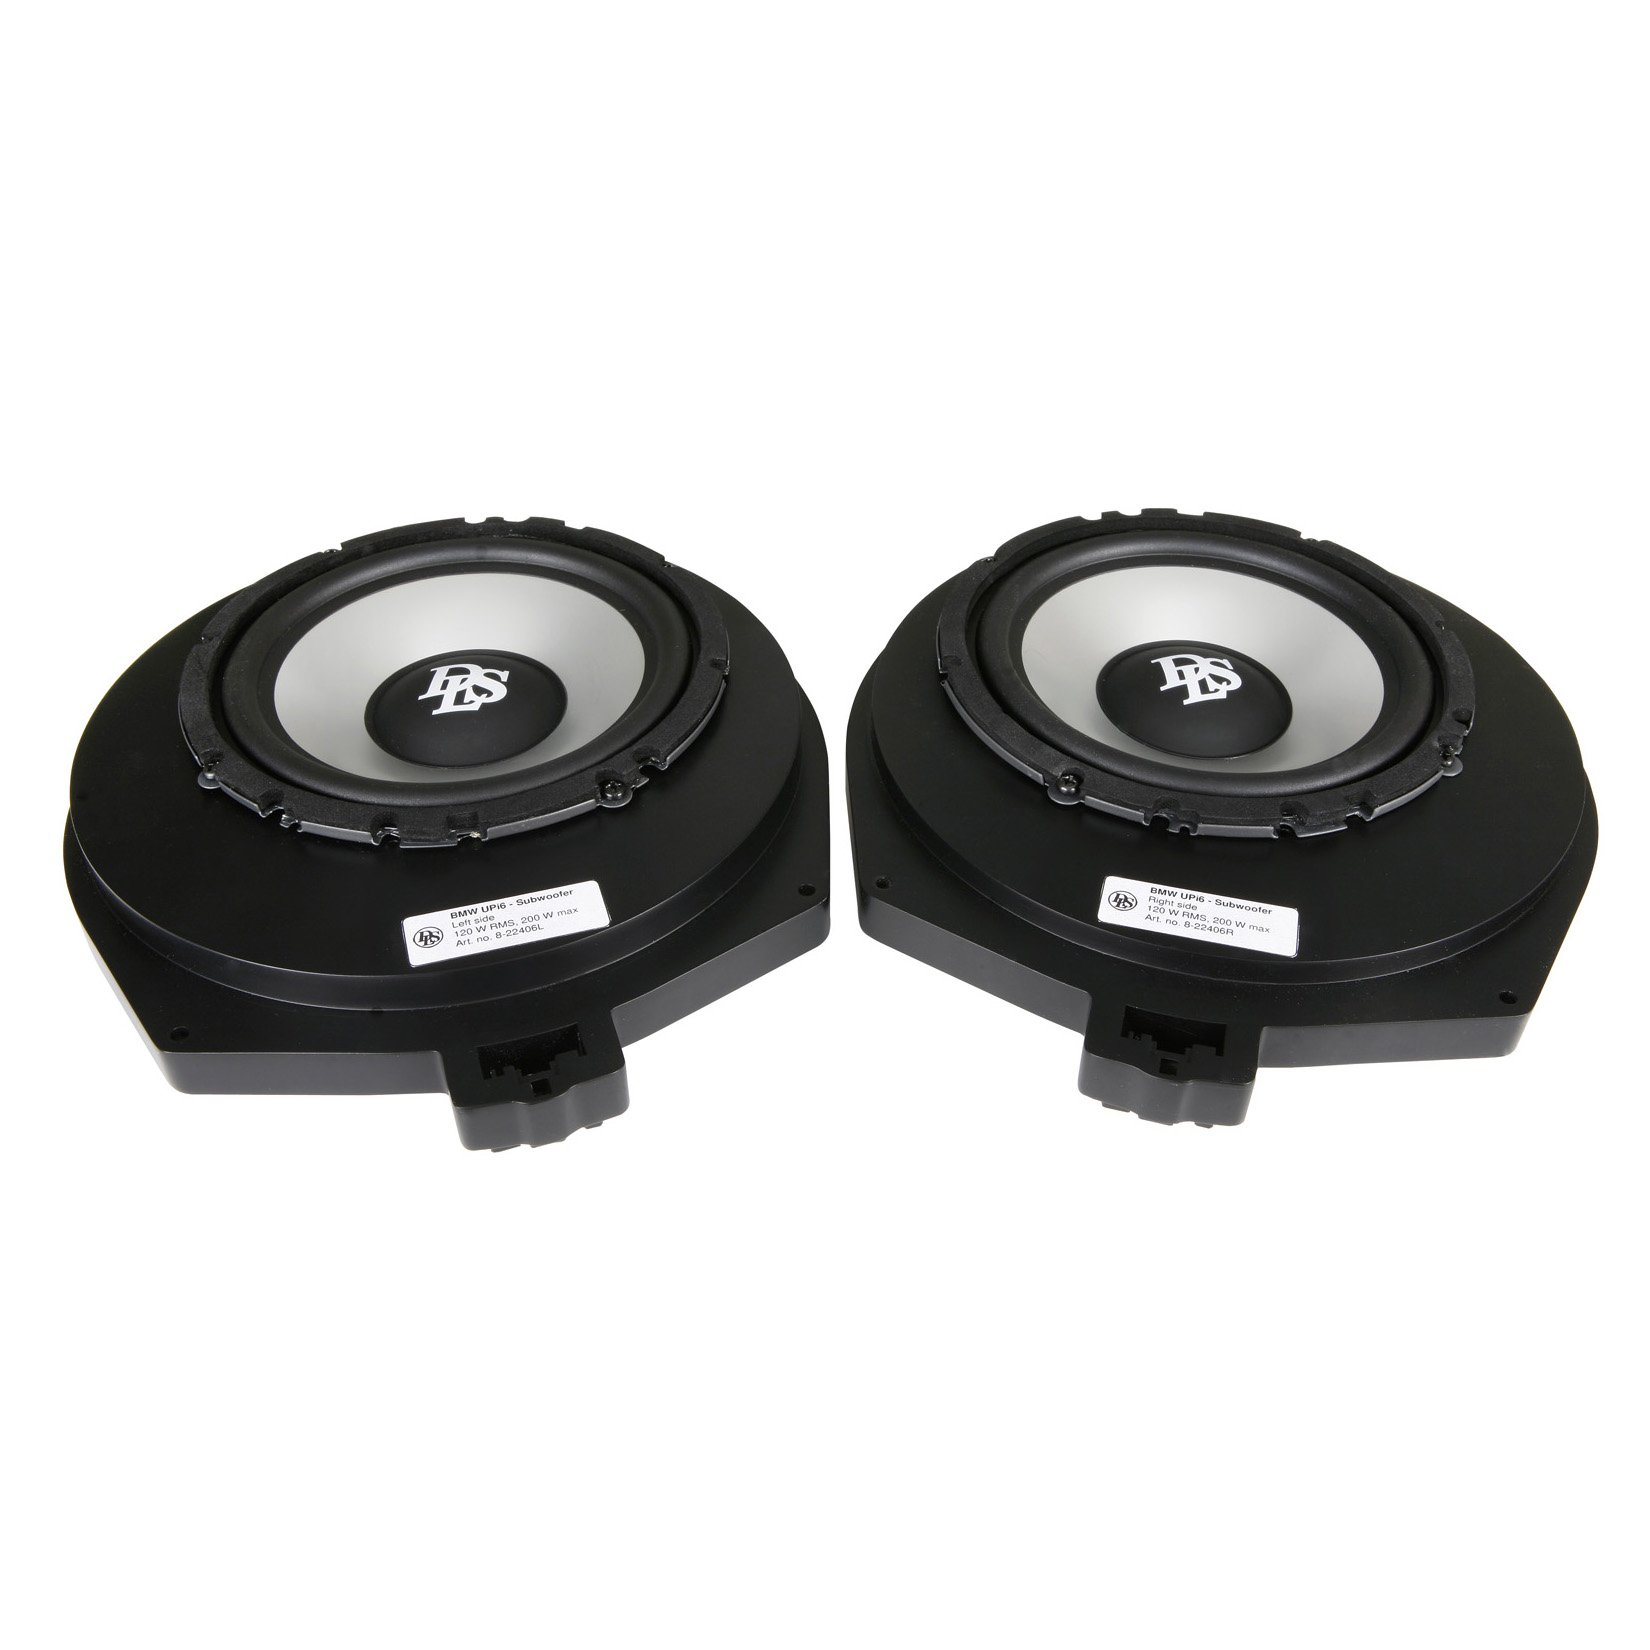 DLS Audio BMWUPi6 Replacement Subwoofer Kit for BMW Cars by DLS Audio